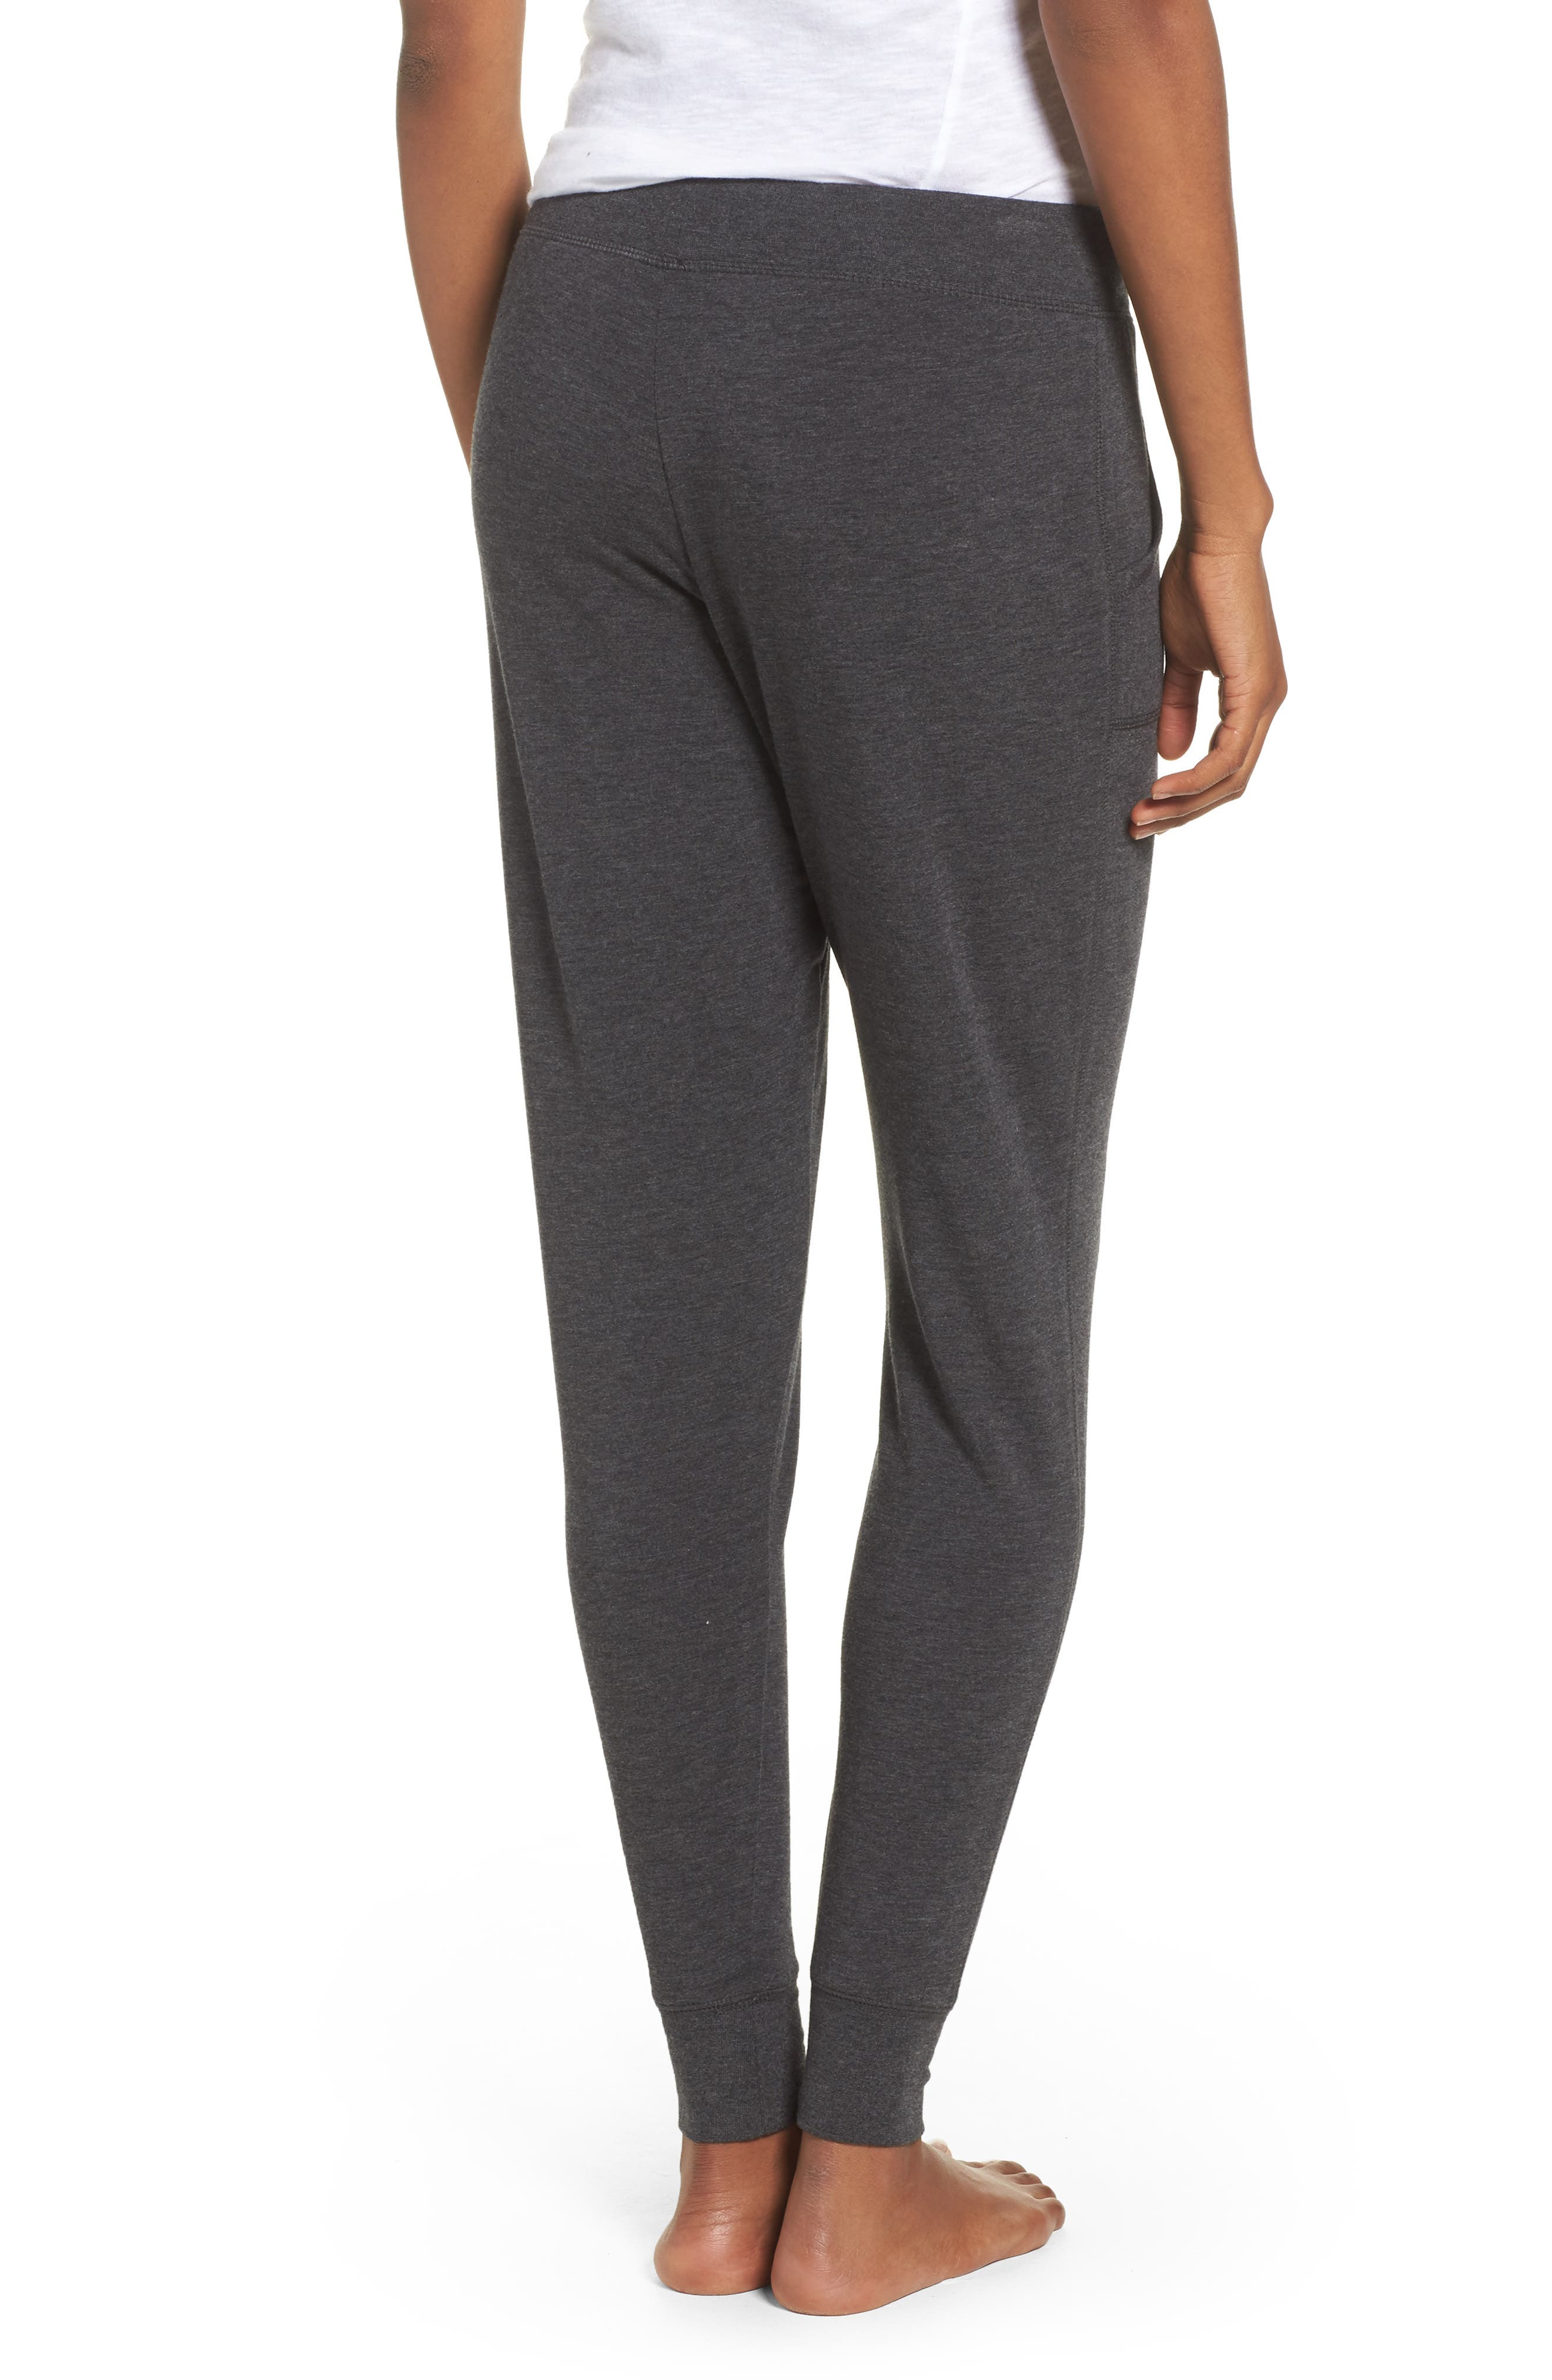 All About It Lounge Pants,                             Alternate thumbnail 2, color,                             030